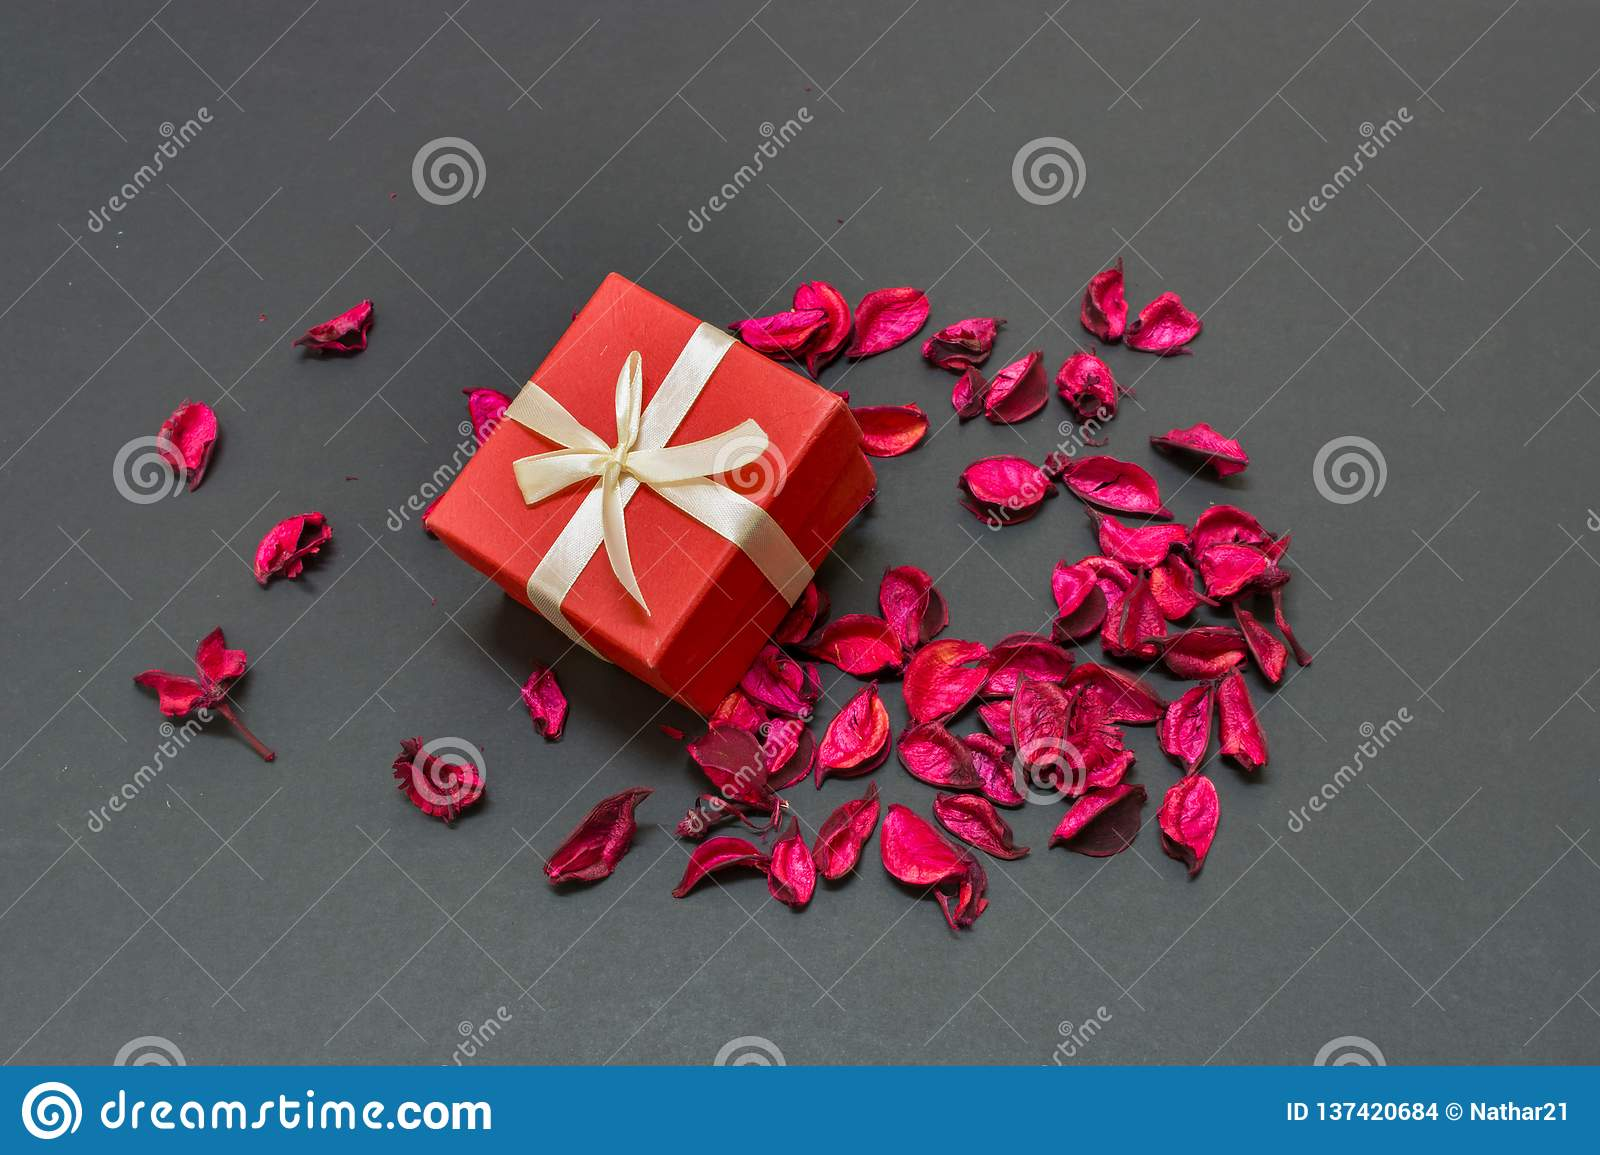 Lovely Valentines Day Gift for the love of life in the centre of rose petals